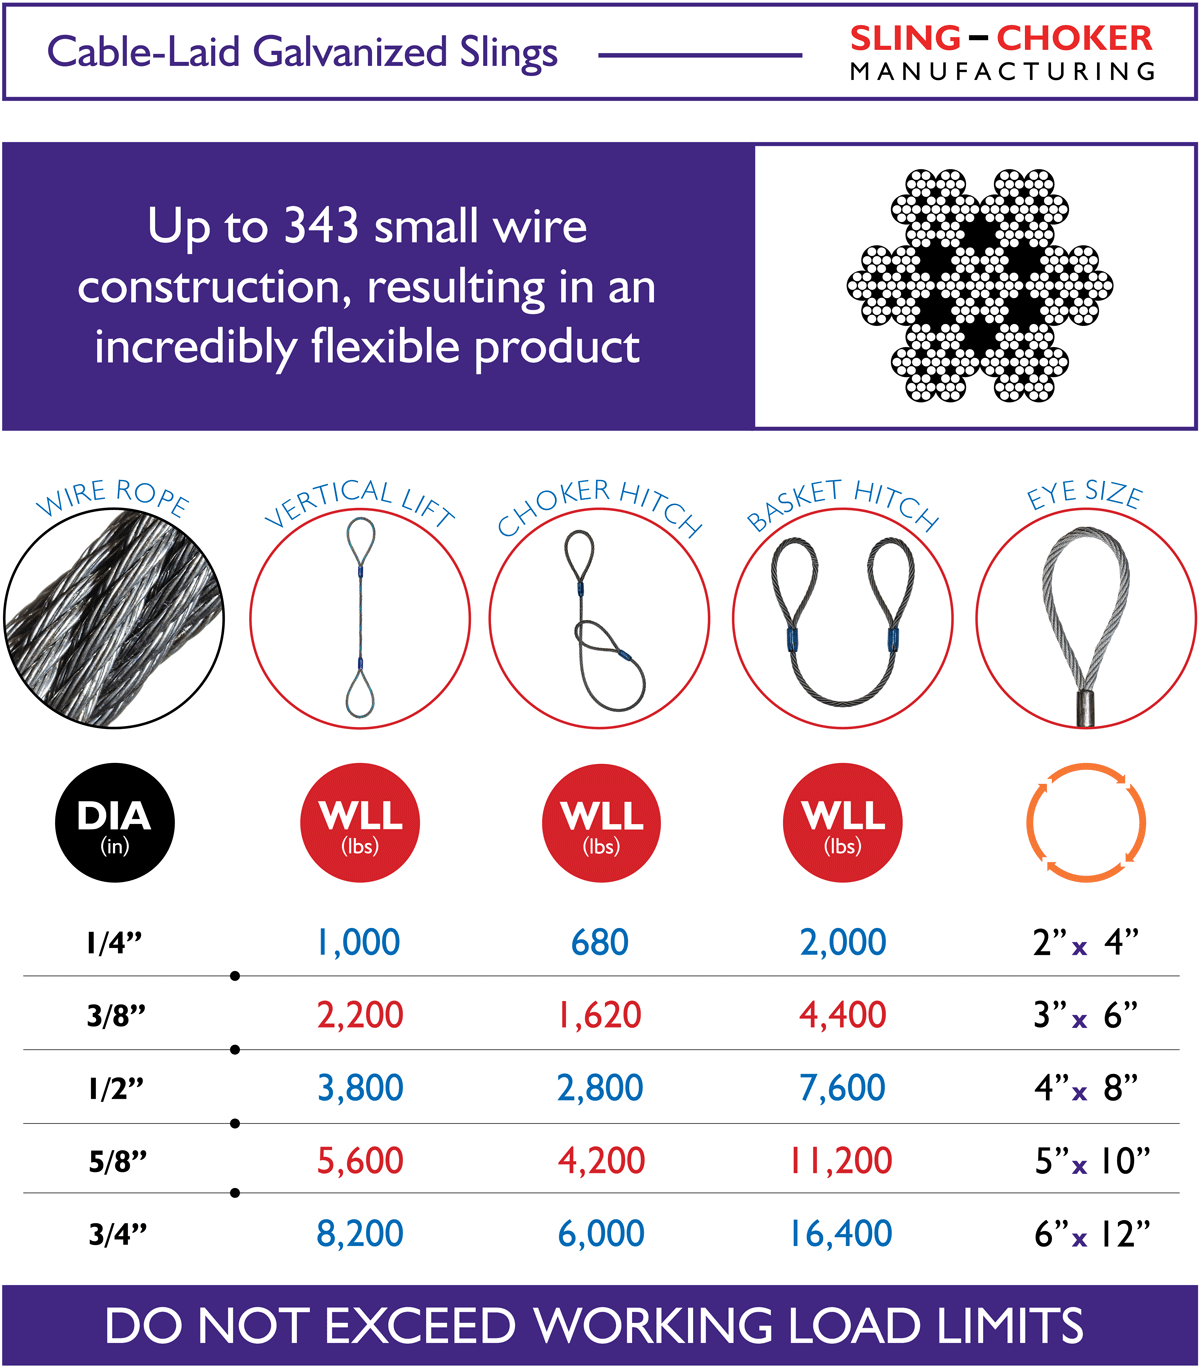 Sling-Choker Mfg. - Cable-Laid Wire Rope Slings